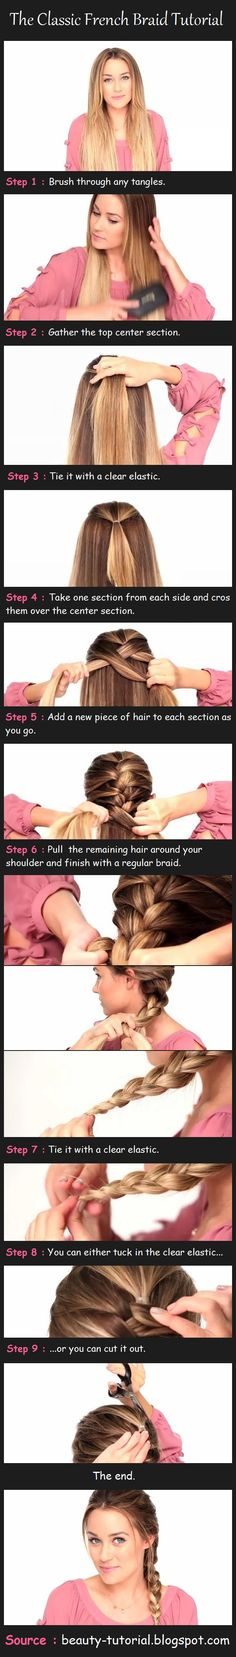 The Classic French Braid Tutorial with Lauren Conrad